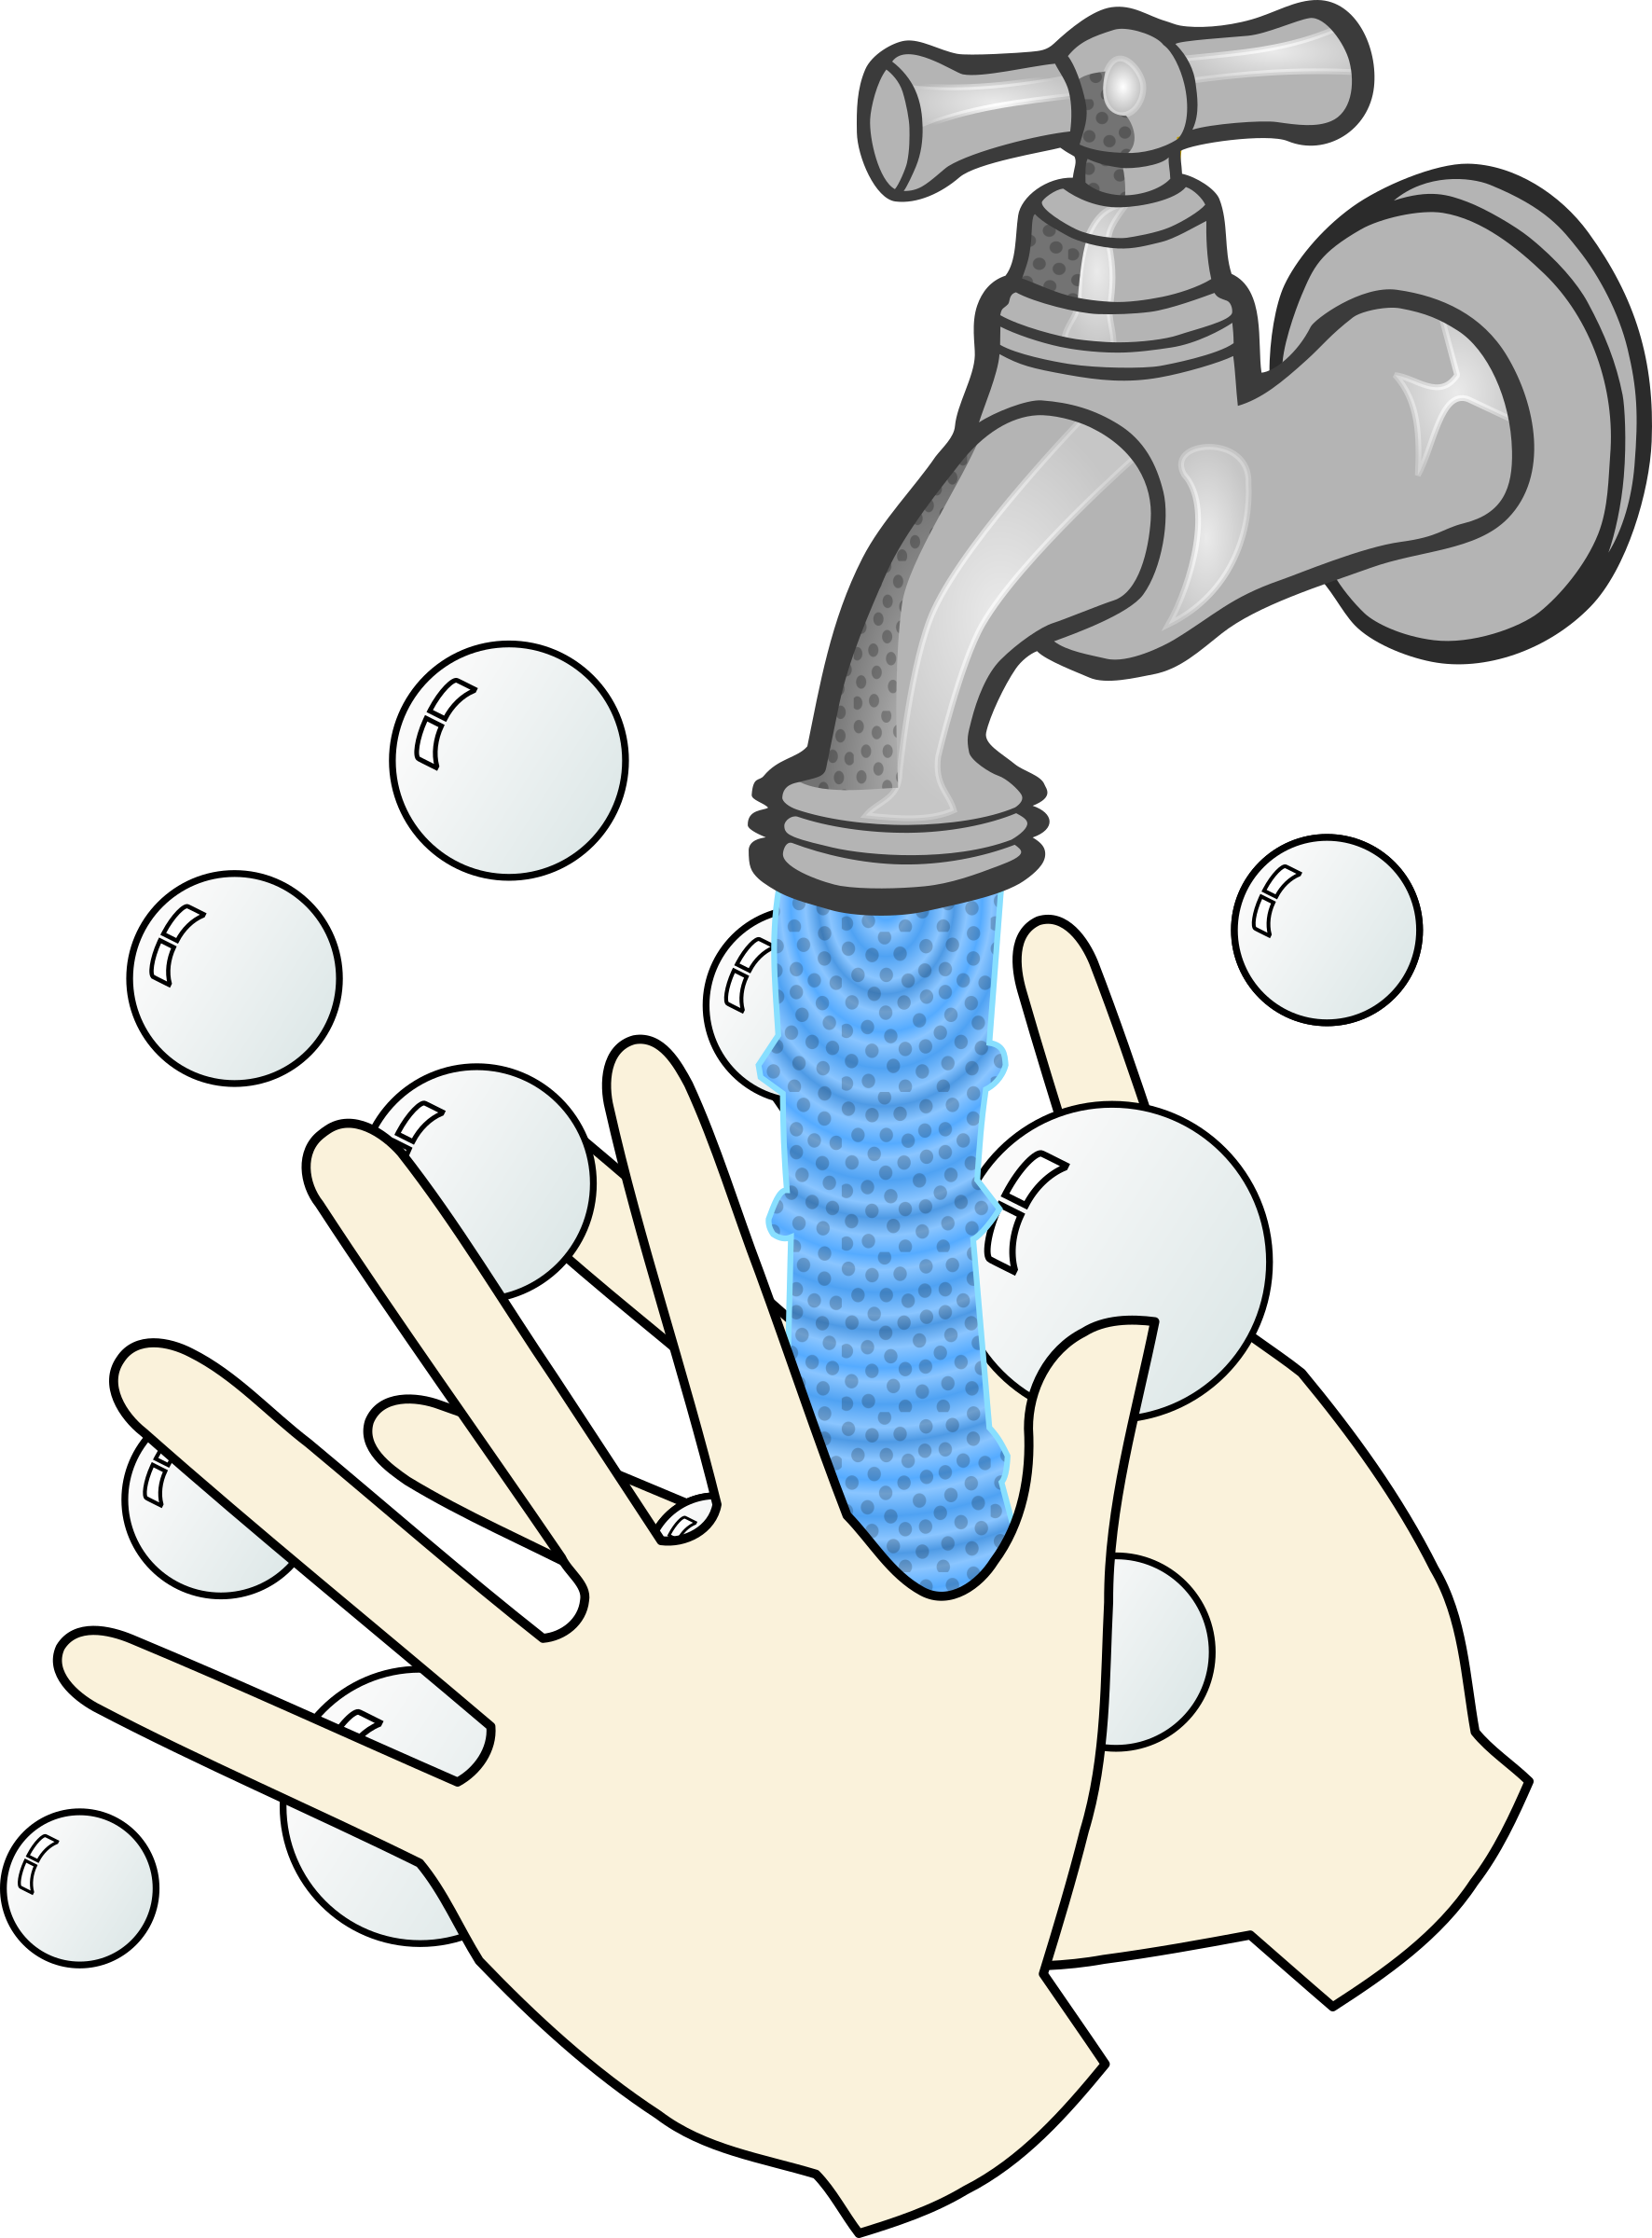 collection of hand. Hands clipart washing dish